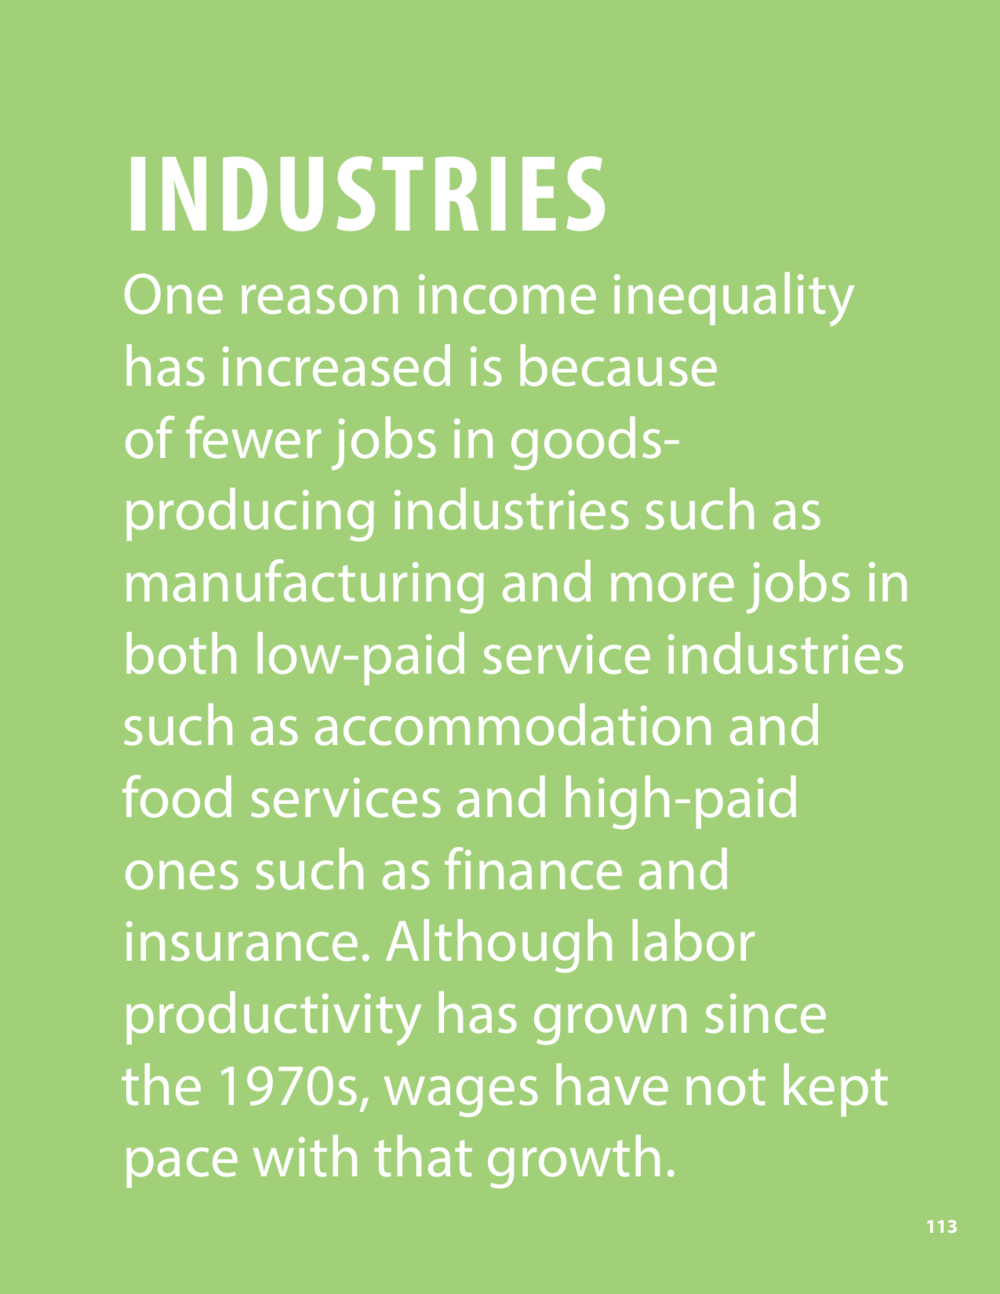 IncomeGuide_2013_Jan17_RGB_page 113_113.png